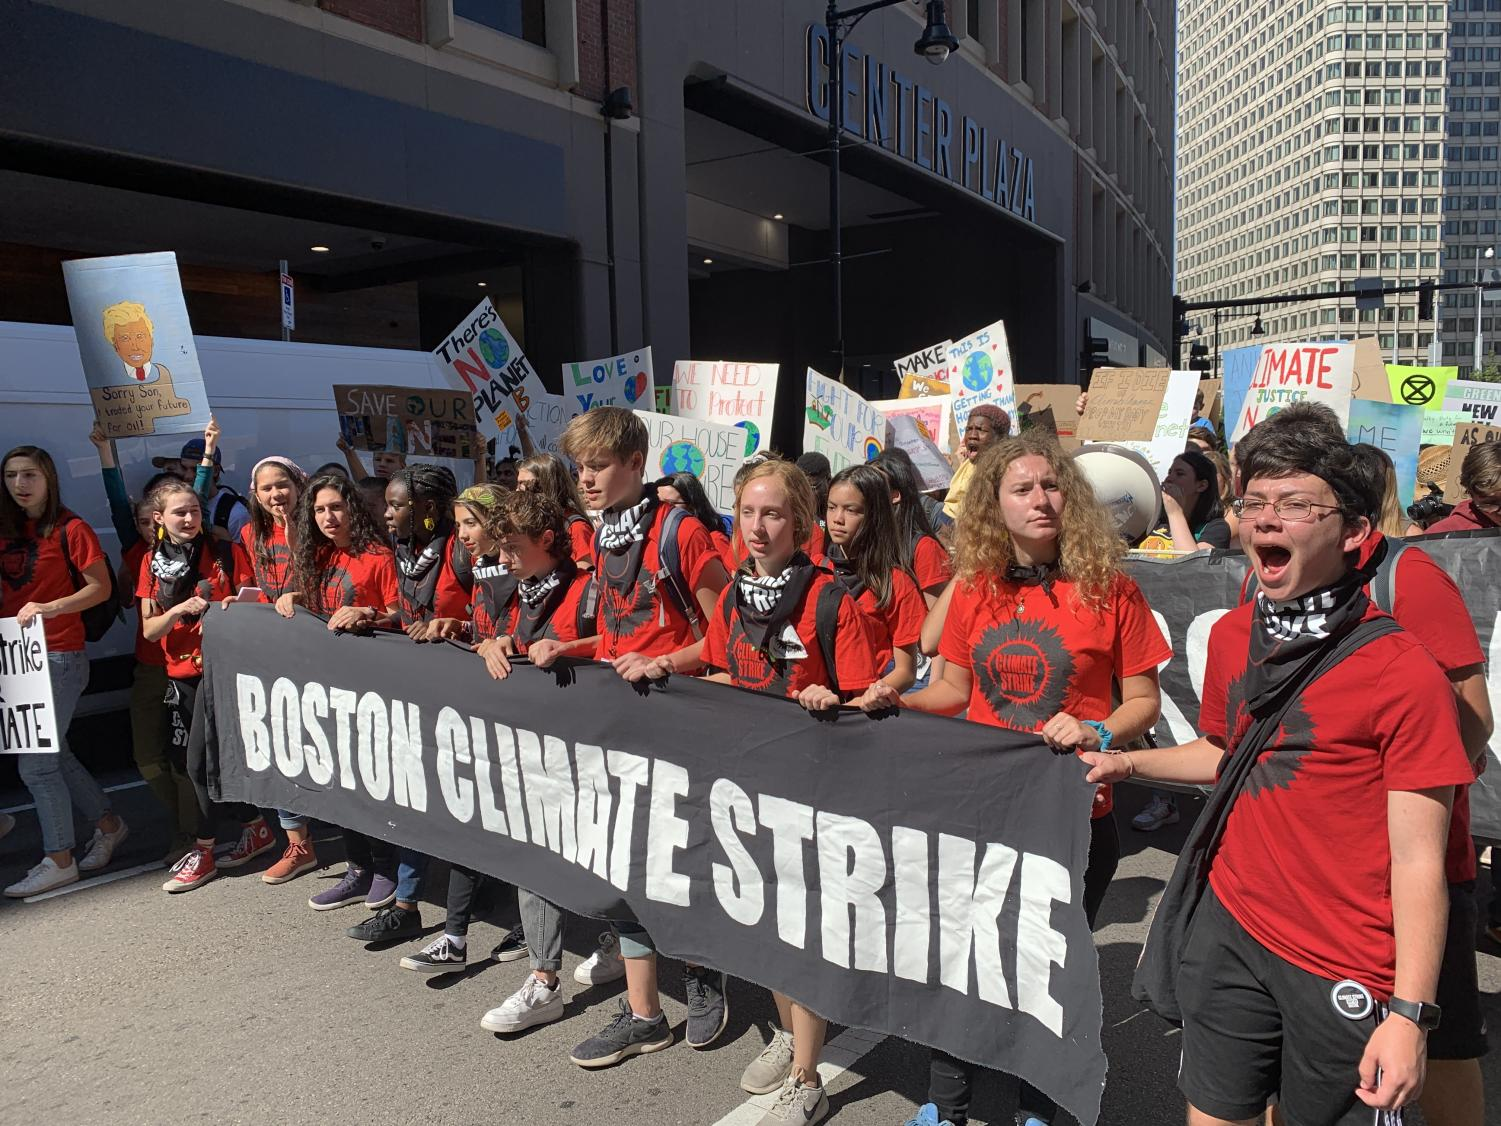 Students marched on Sept. 20 in Boston for environmental justice, calling for elected officials to take comprehensive and drastic actions on the climate crisis.